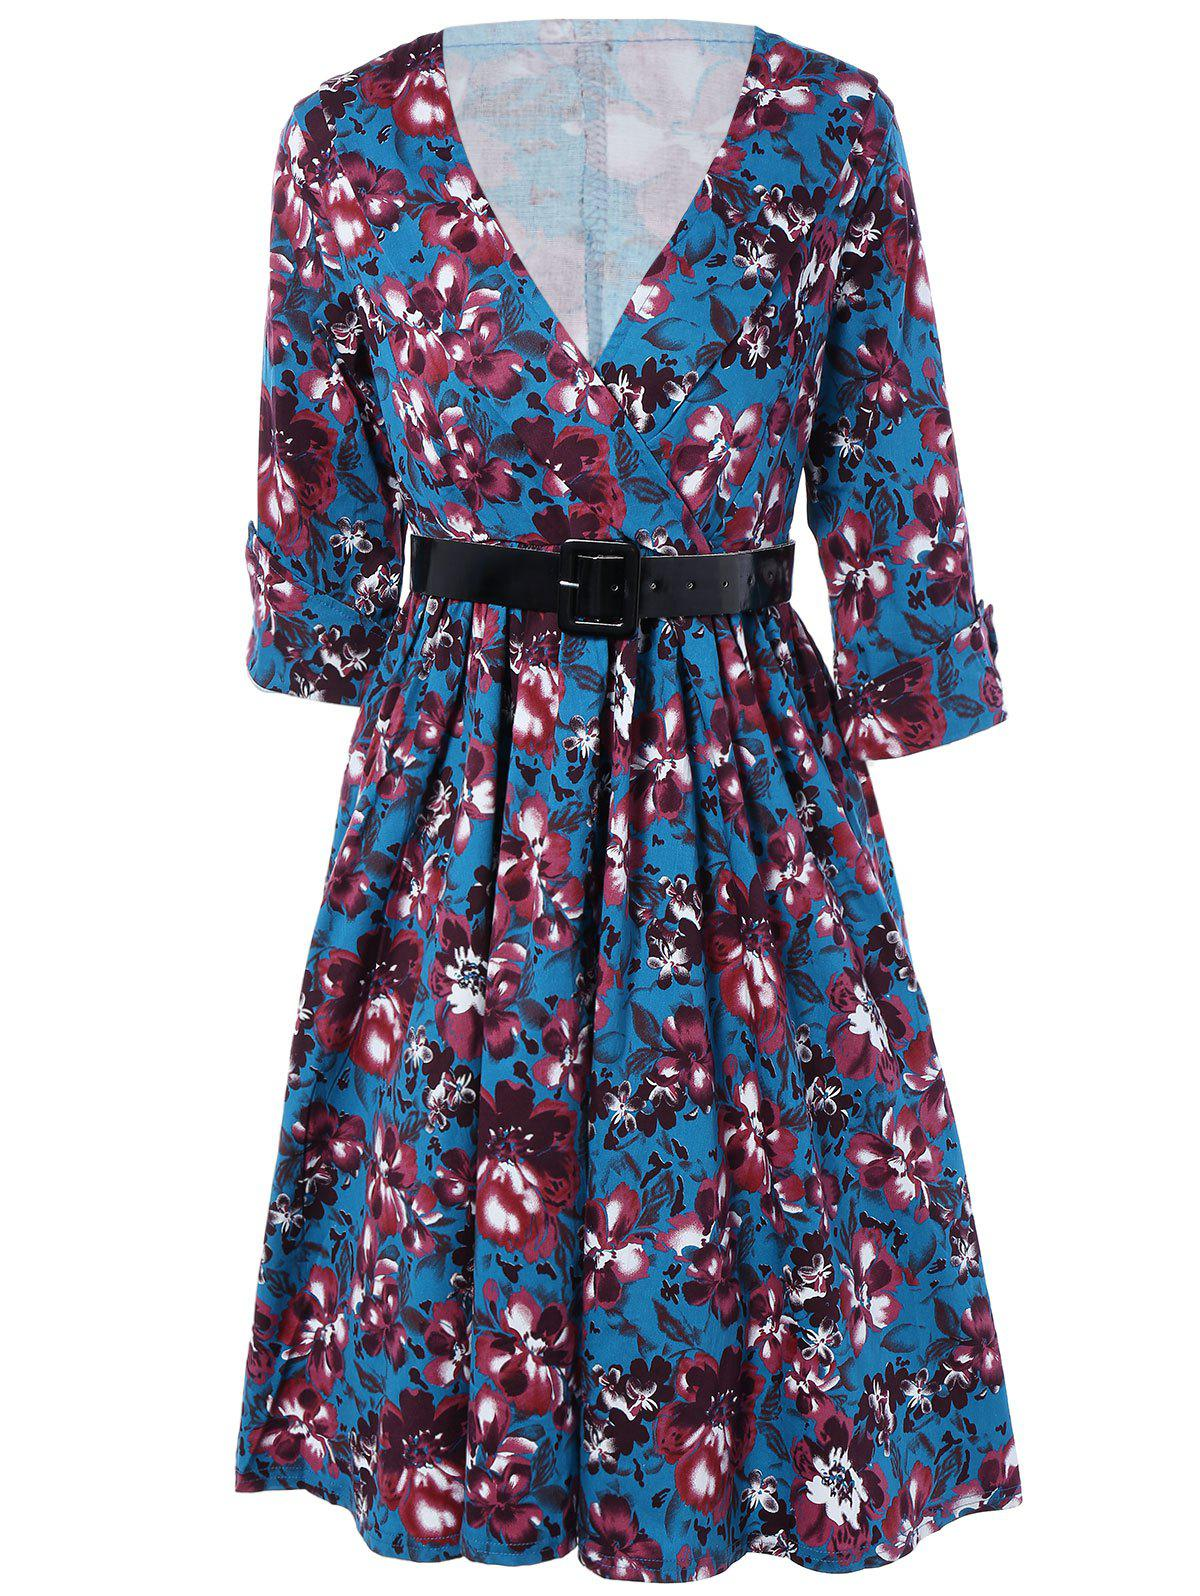 Retro Style Cuffed Sleeve Belted Floral Dress For Women